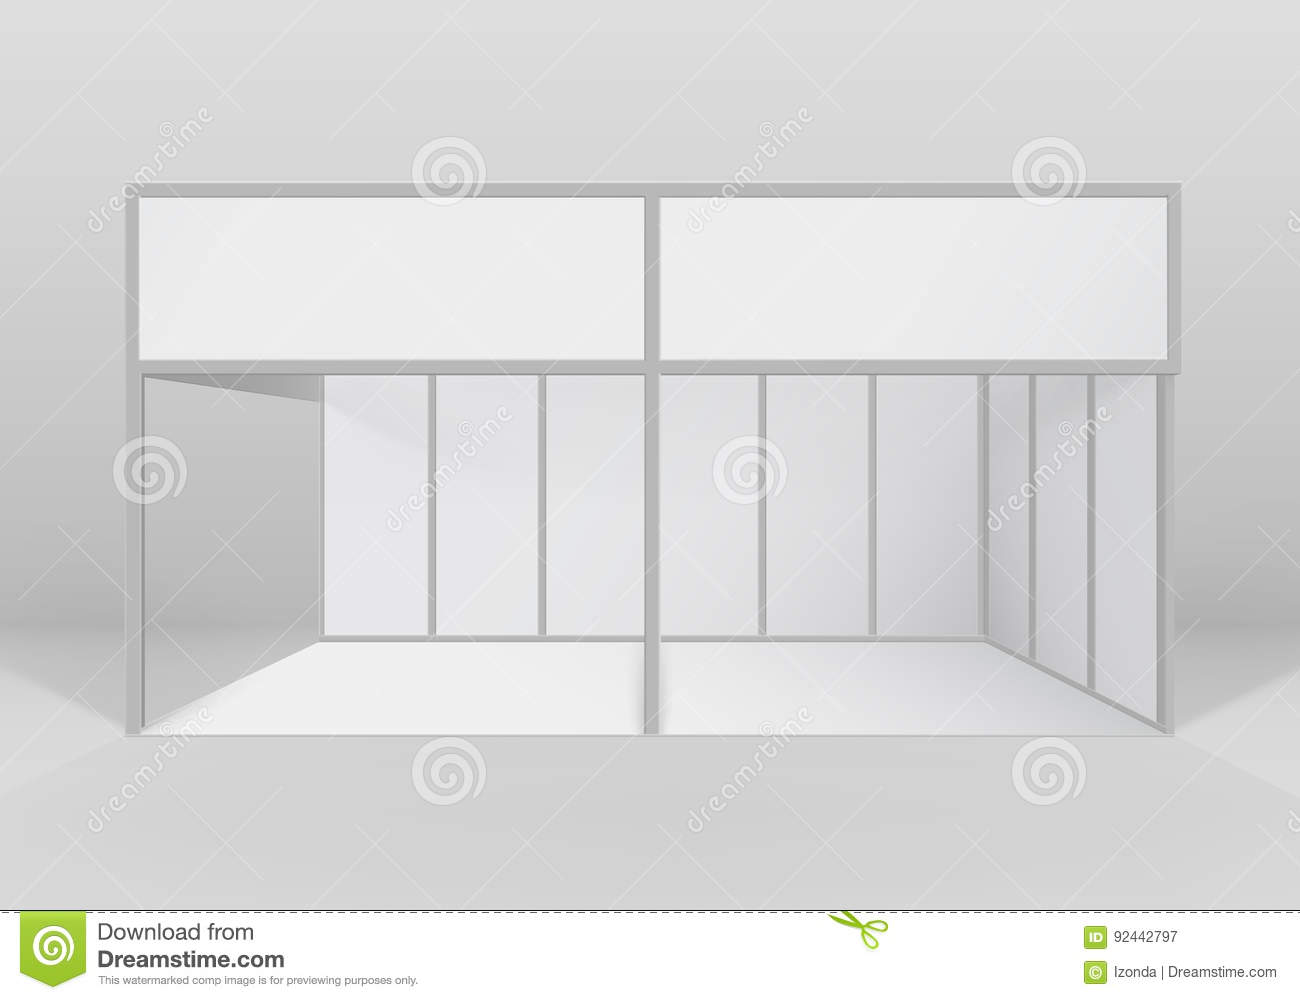 Exhibition Booth Vector Free Download : Vector white indoor trade exhibition booth standard stand